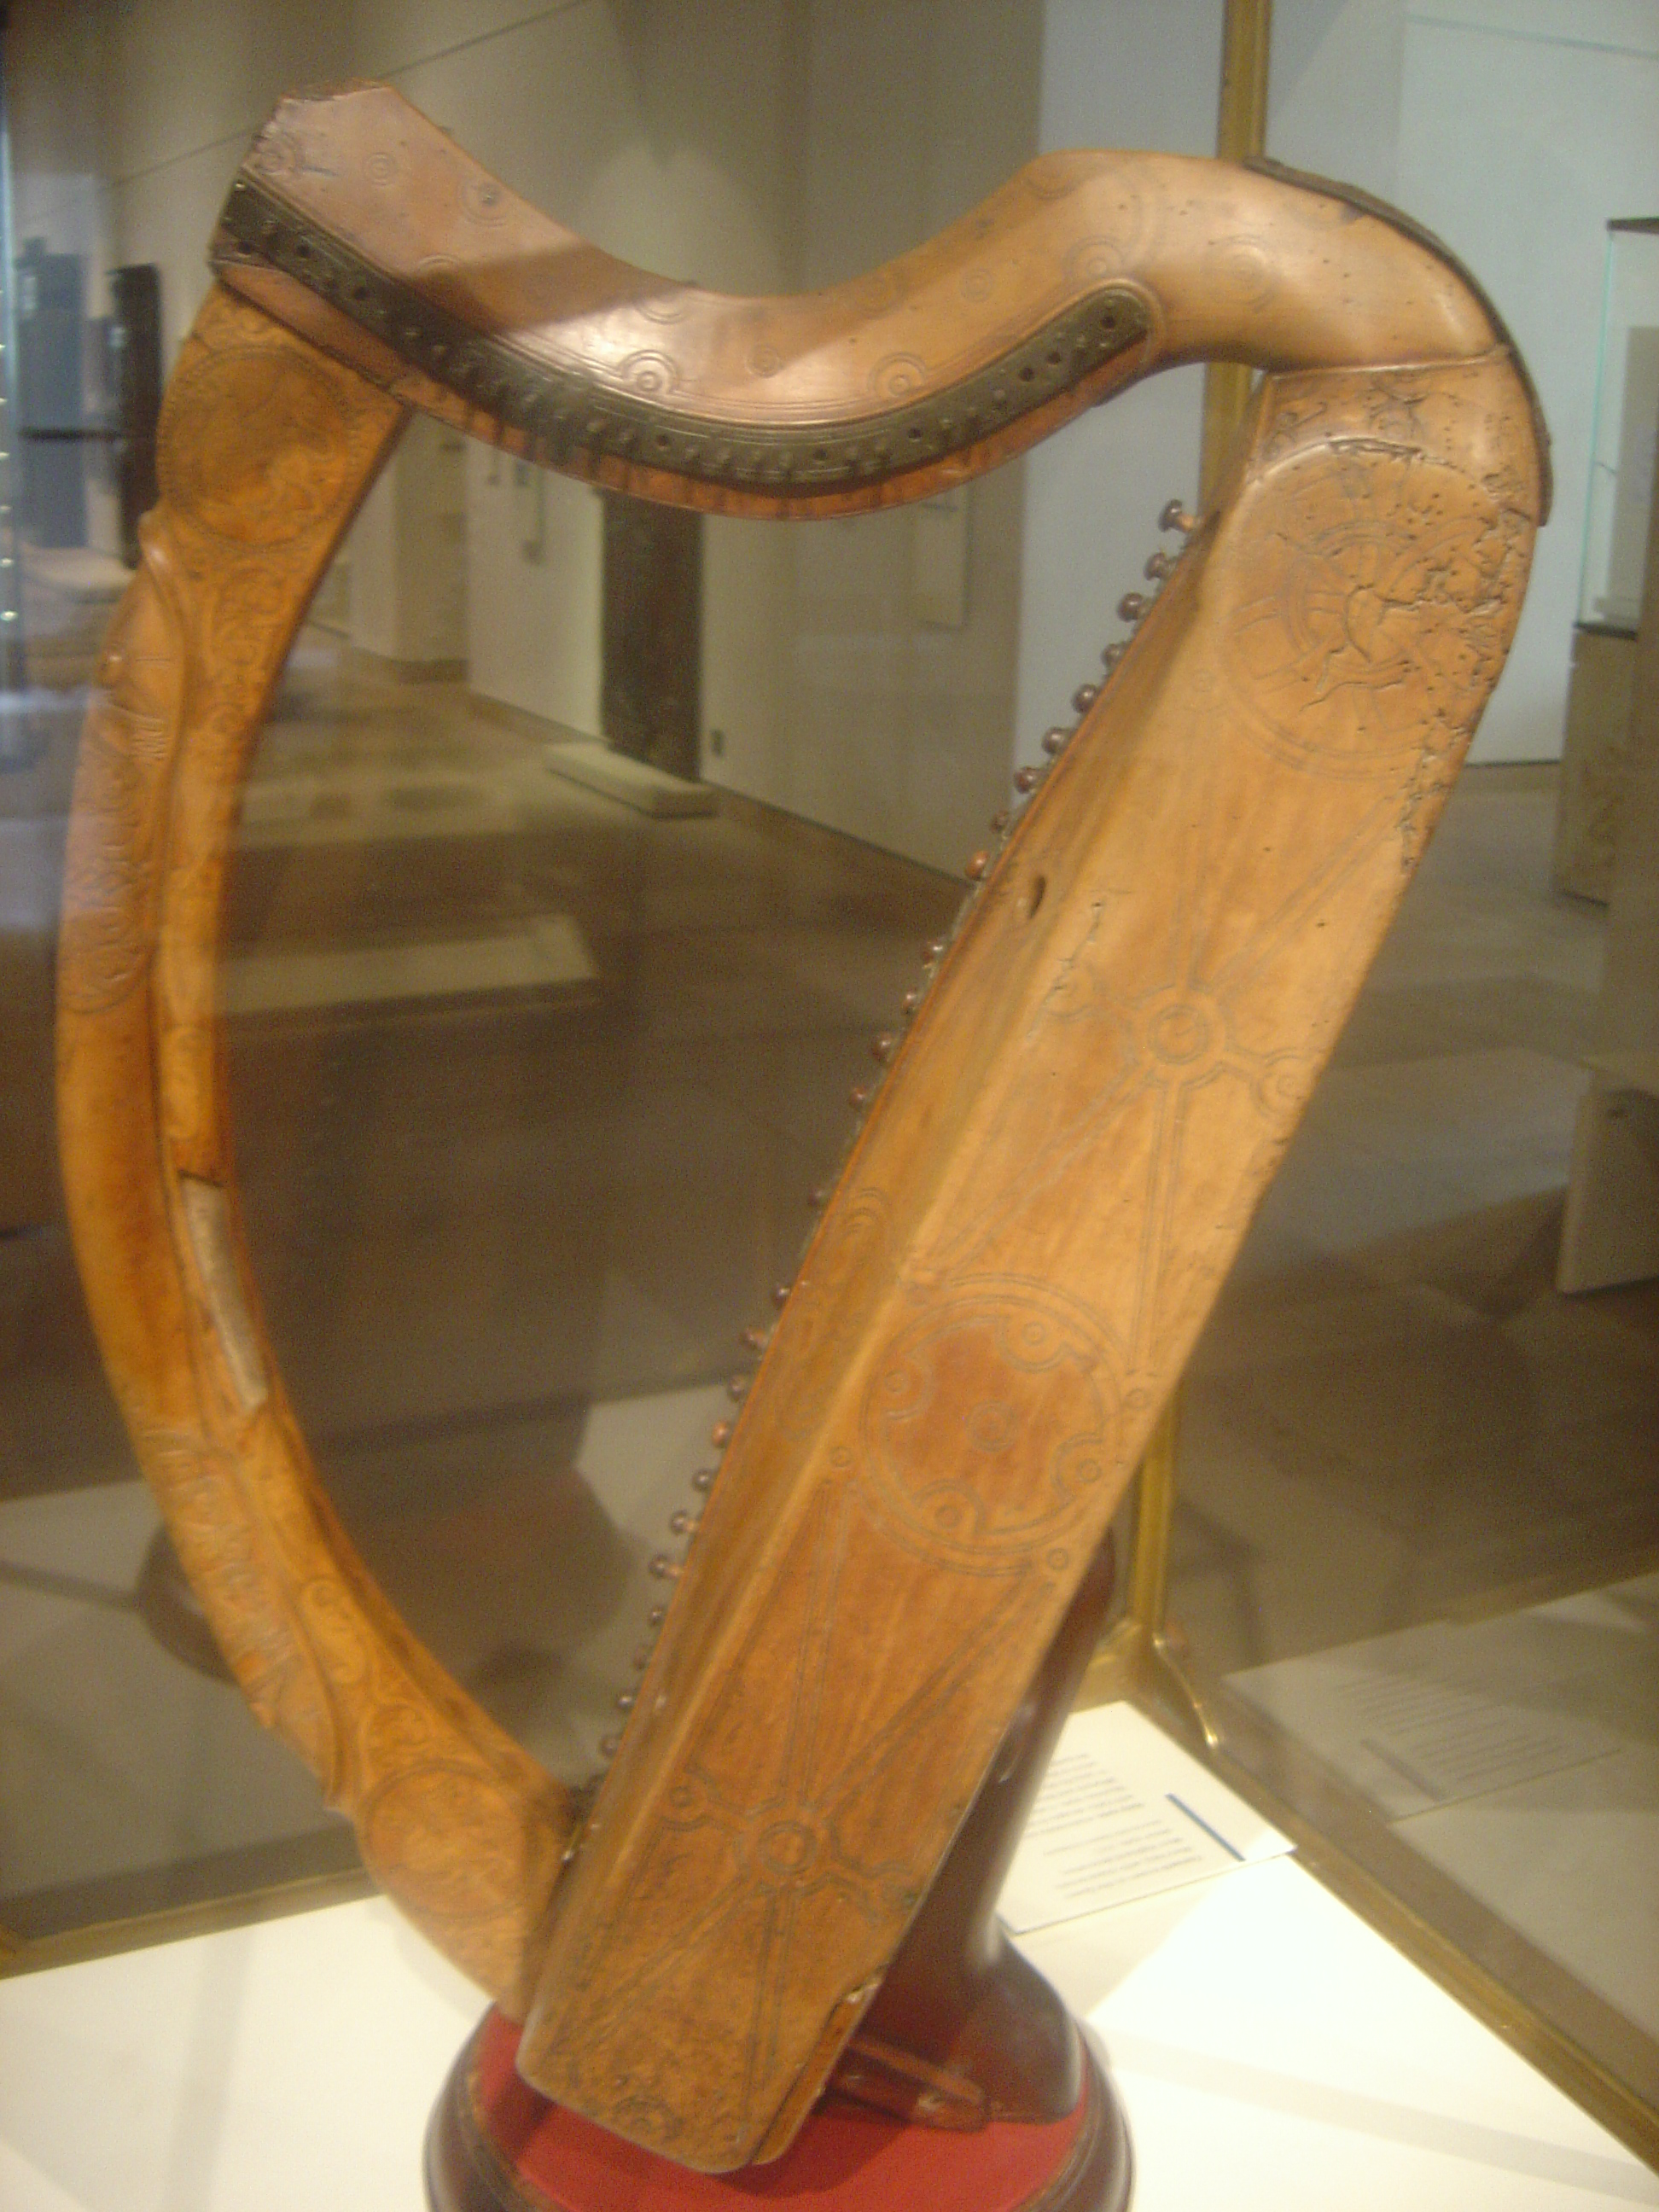 http://upload.wikimedia.org/wikipedia/commons/9/9a/Celtic_harp_dsc05425.jpg